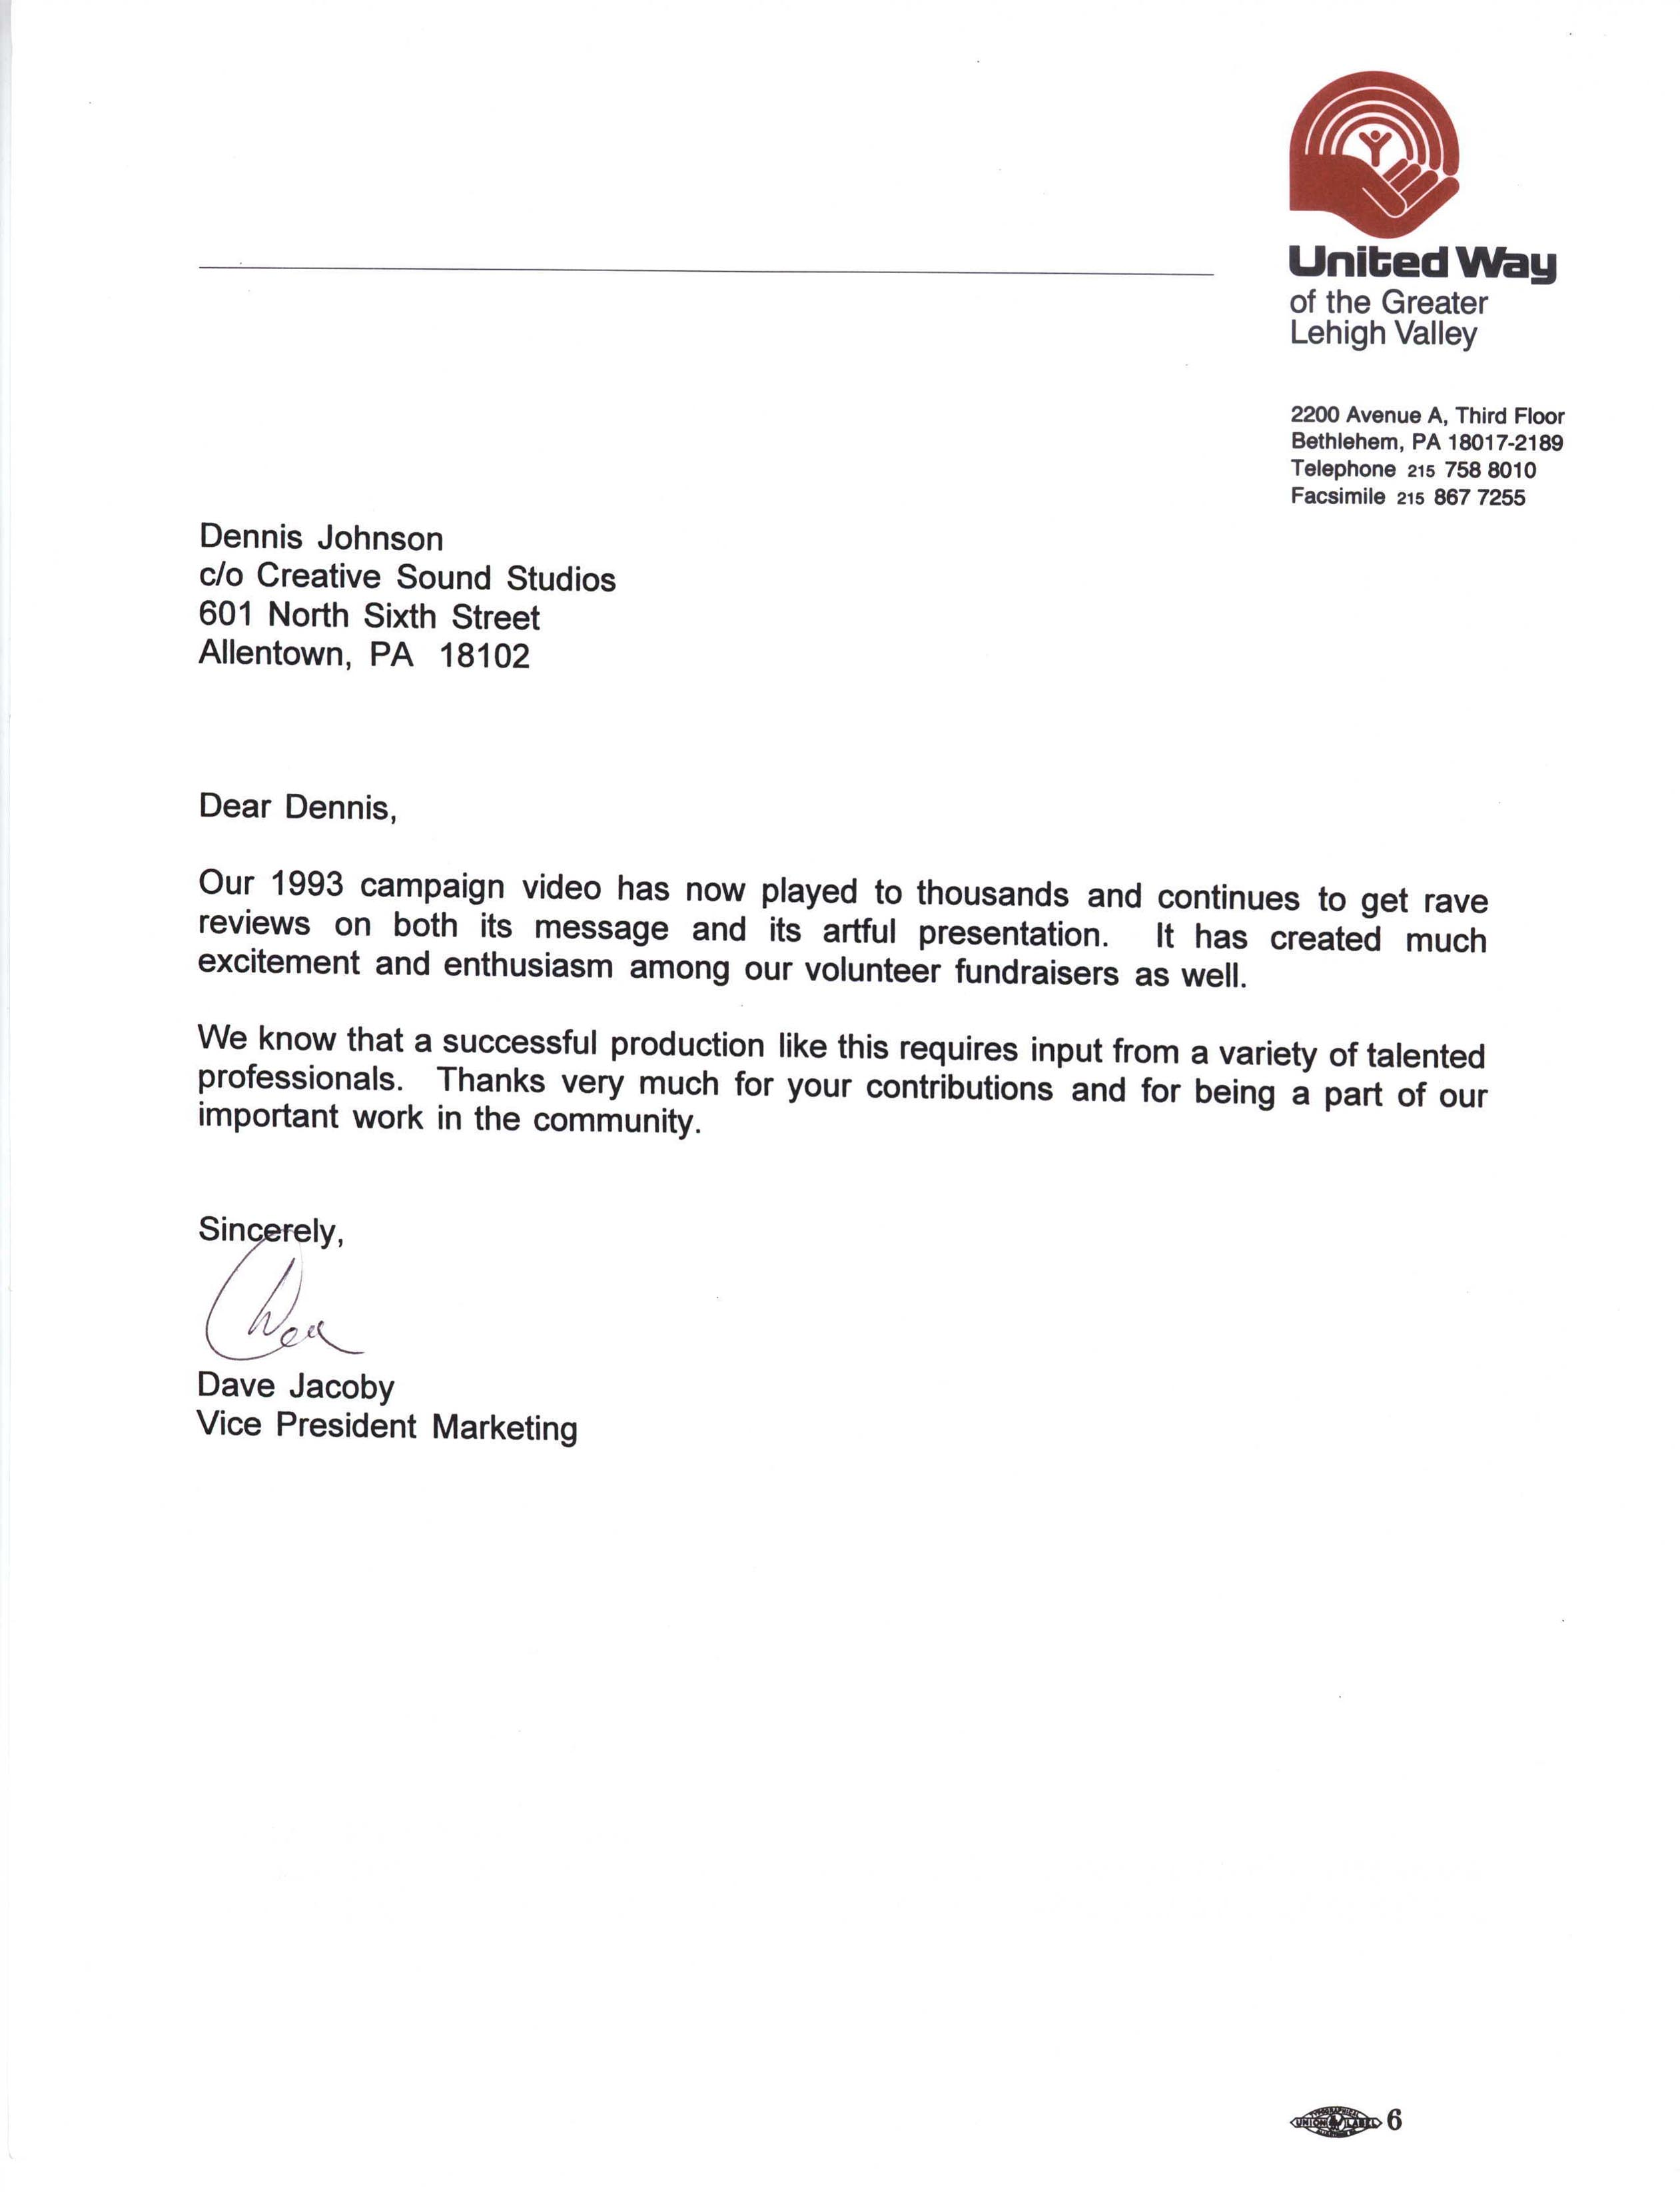 United-Way-campaign-letter-98